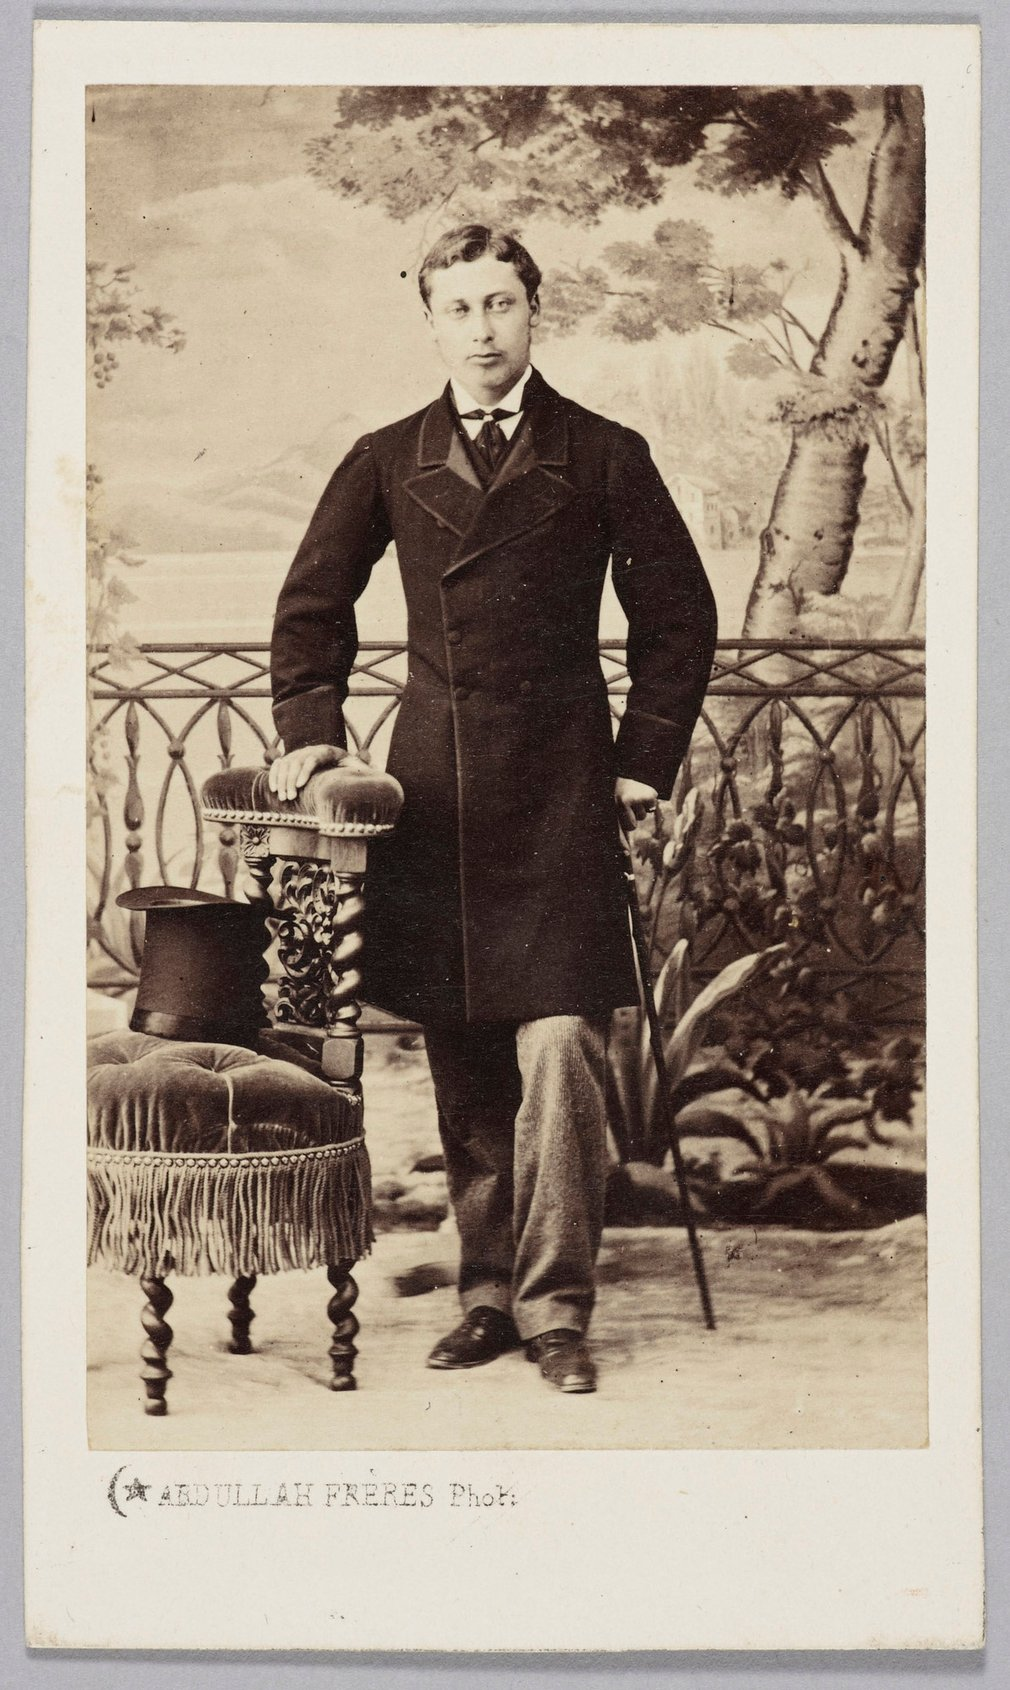 Carte-de-visite portrait of the Prince of Wales, later King Edward VII, taken in Constantinople at the end of his tour of the Middle East in 1862. The carte-de-visite is part of an album of cartes of the Prince of Wales, compiled over several years. The c